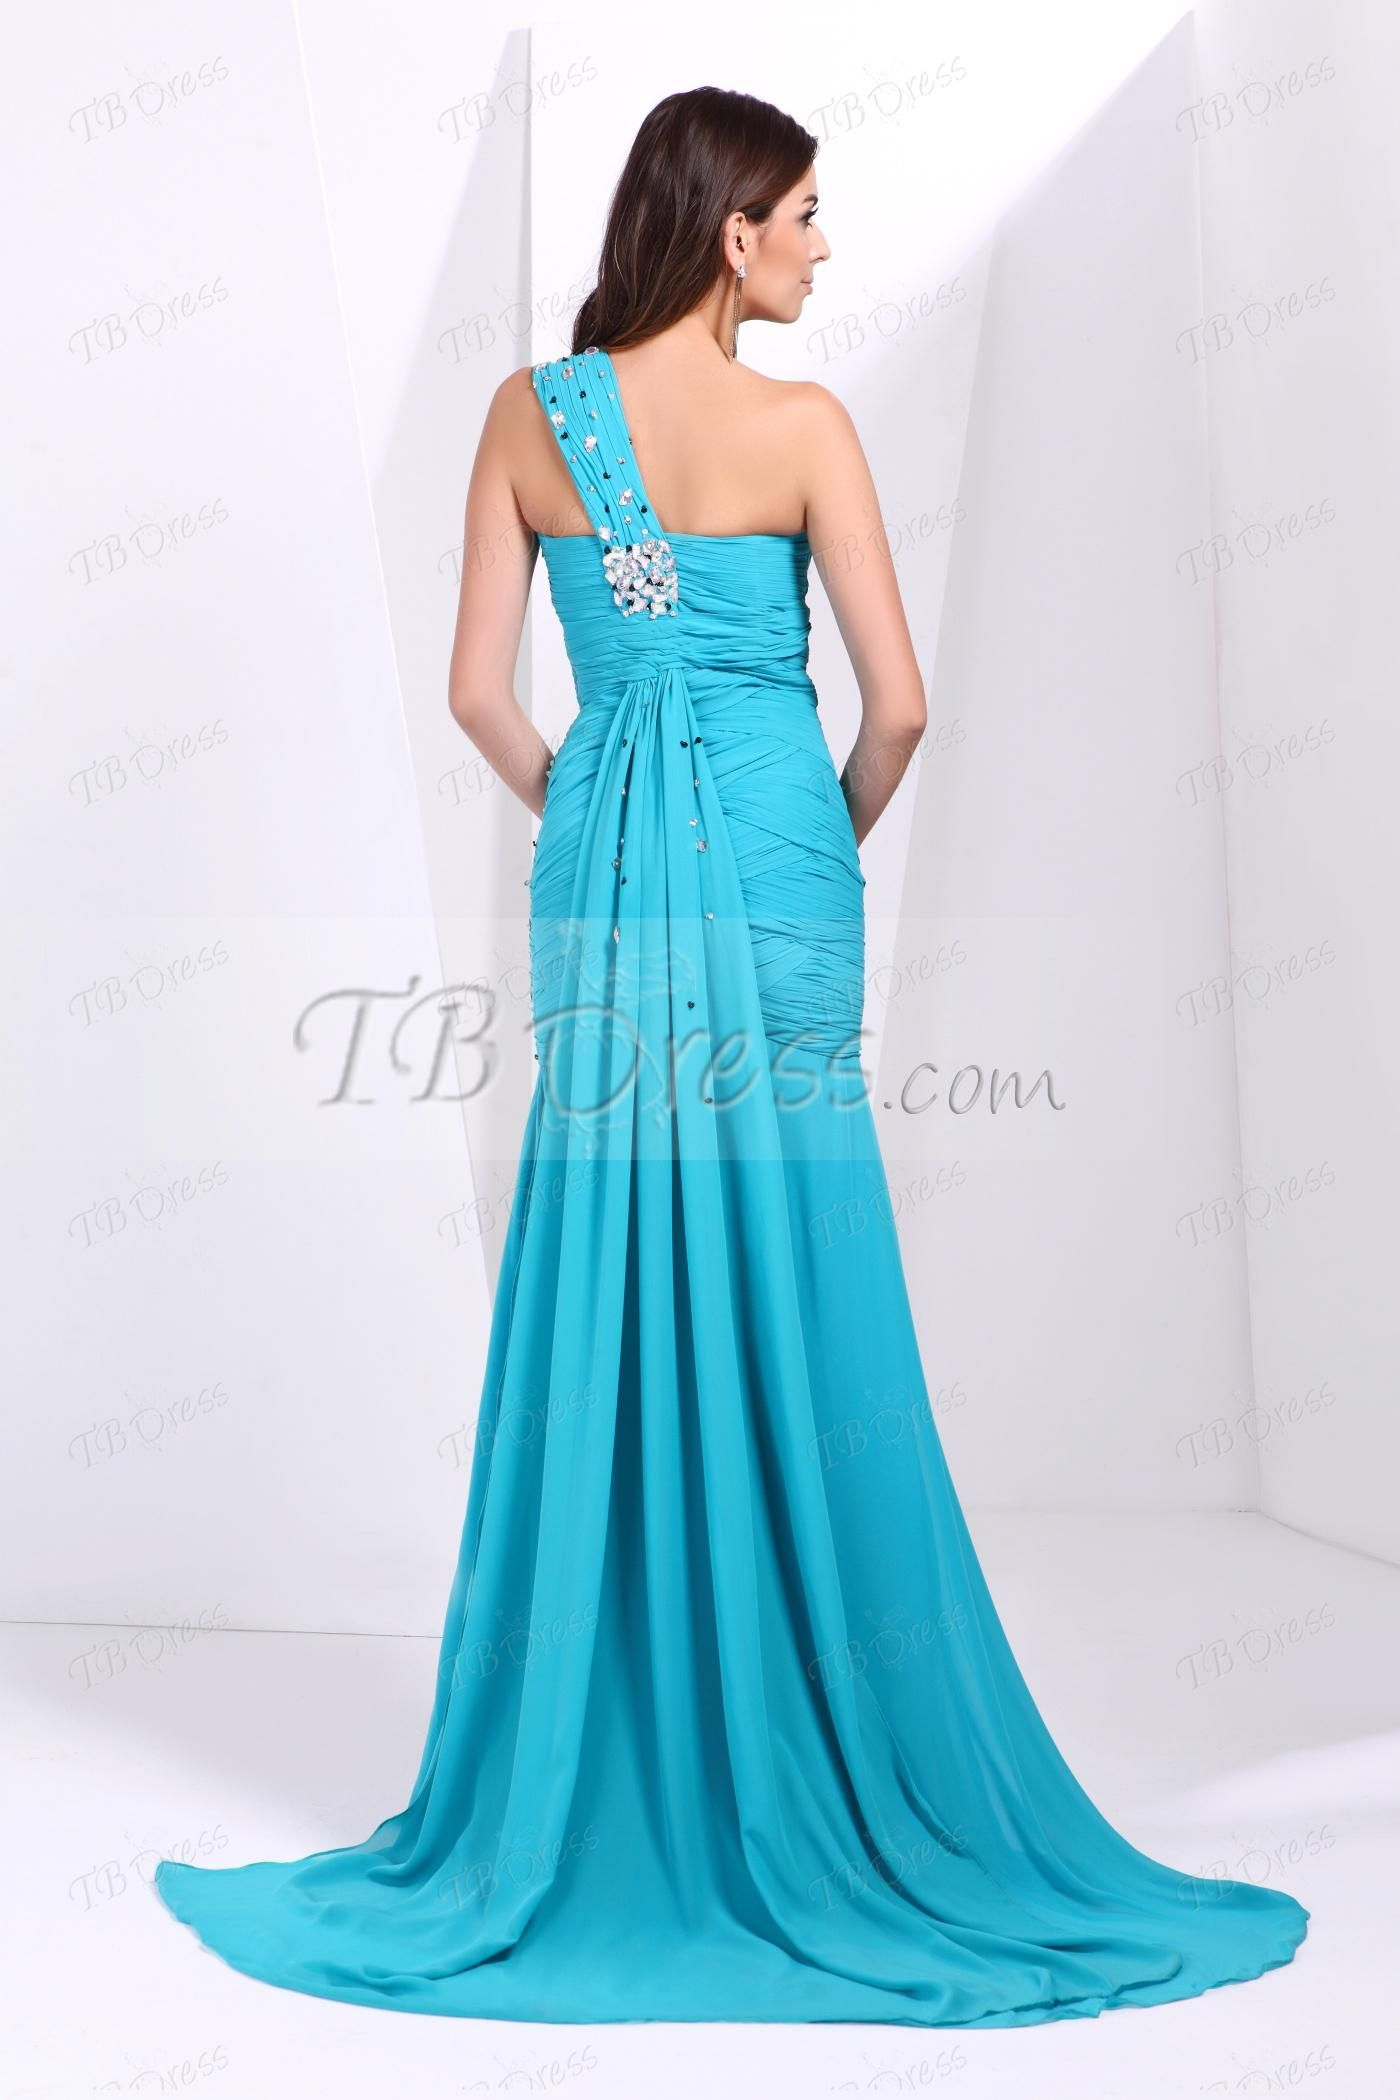 Oneshoulder beading ruched talineus long prom dress long prom